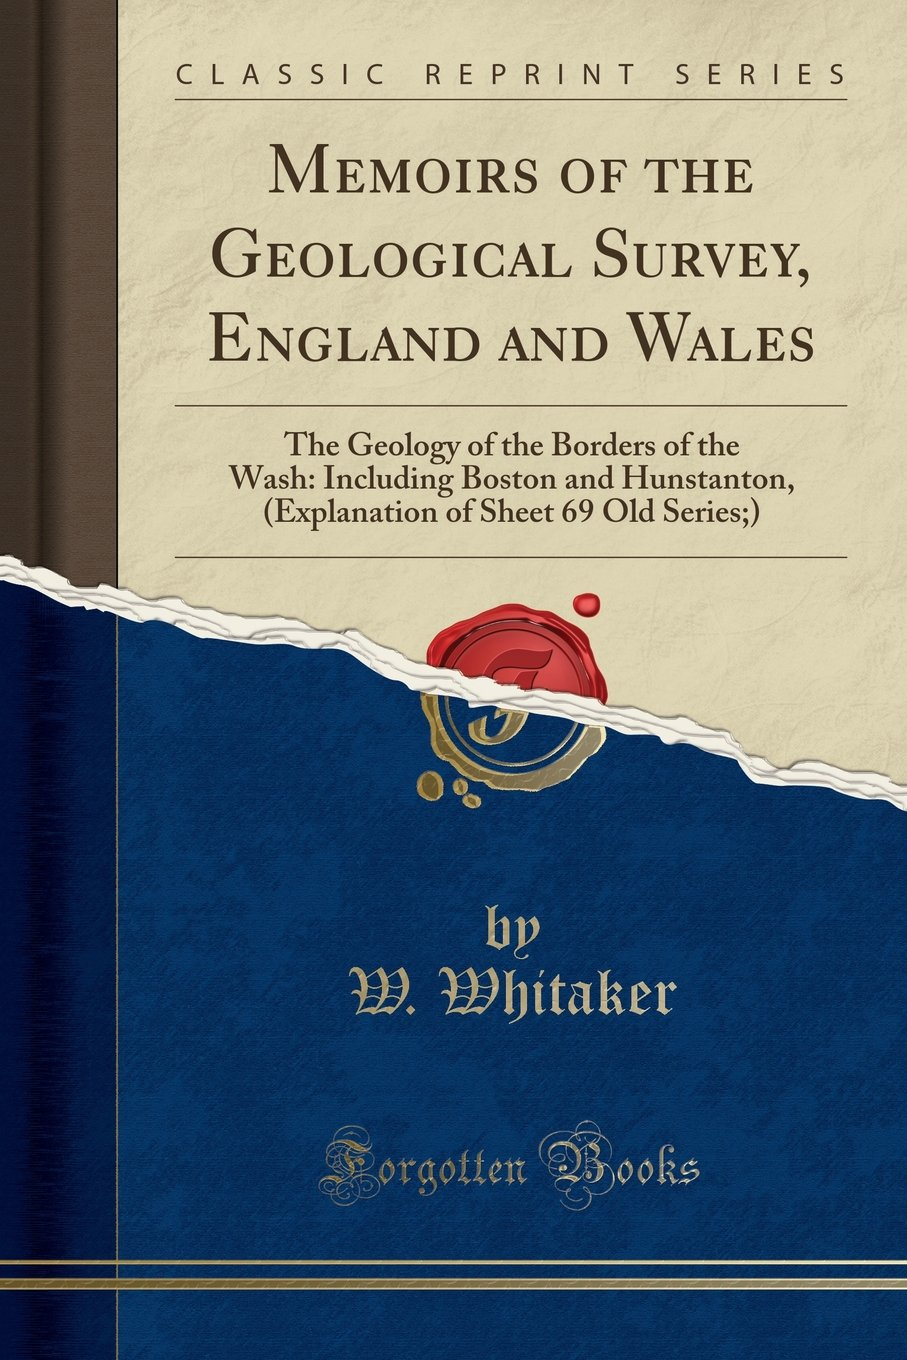 Memoirs of the Geological Survey, England and Wales: The Geology of the Borders of the Wash: Including Boston and Hunstanton, (Explanation of Sheet 69 Old Series;) (Classic Reprint) PDF